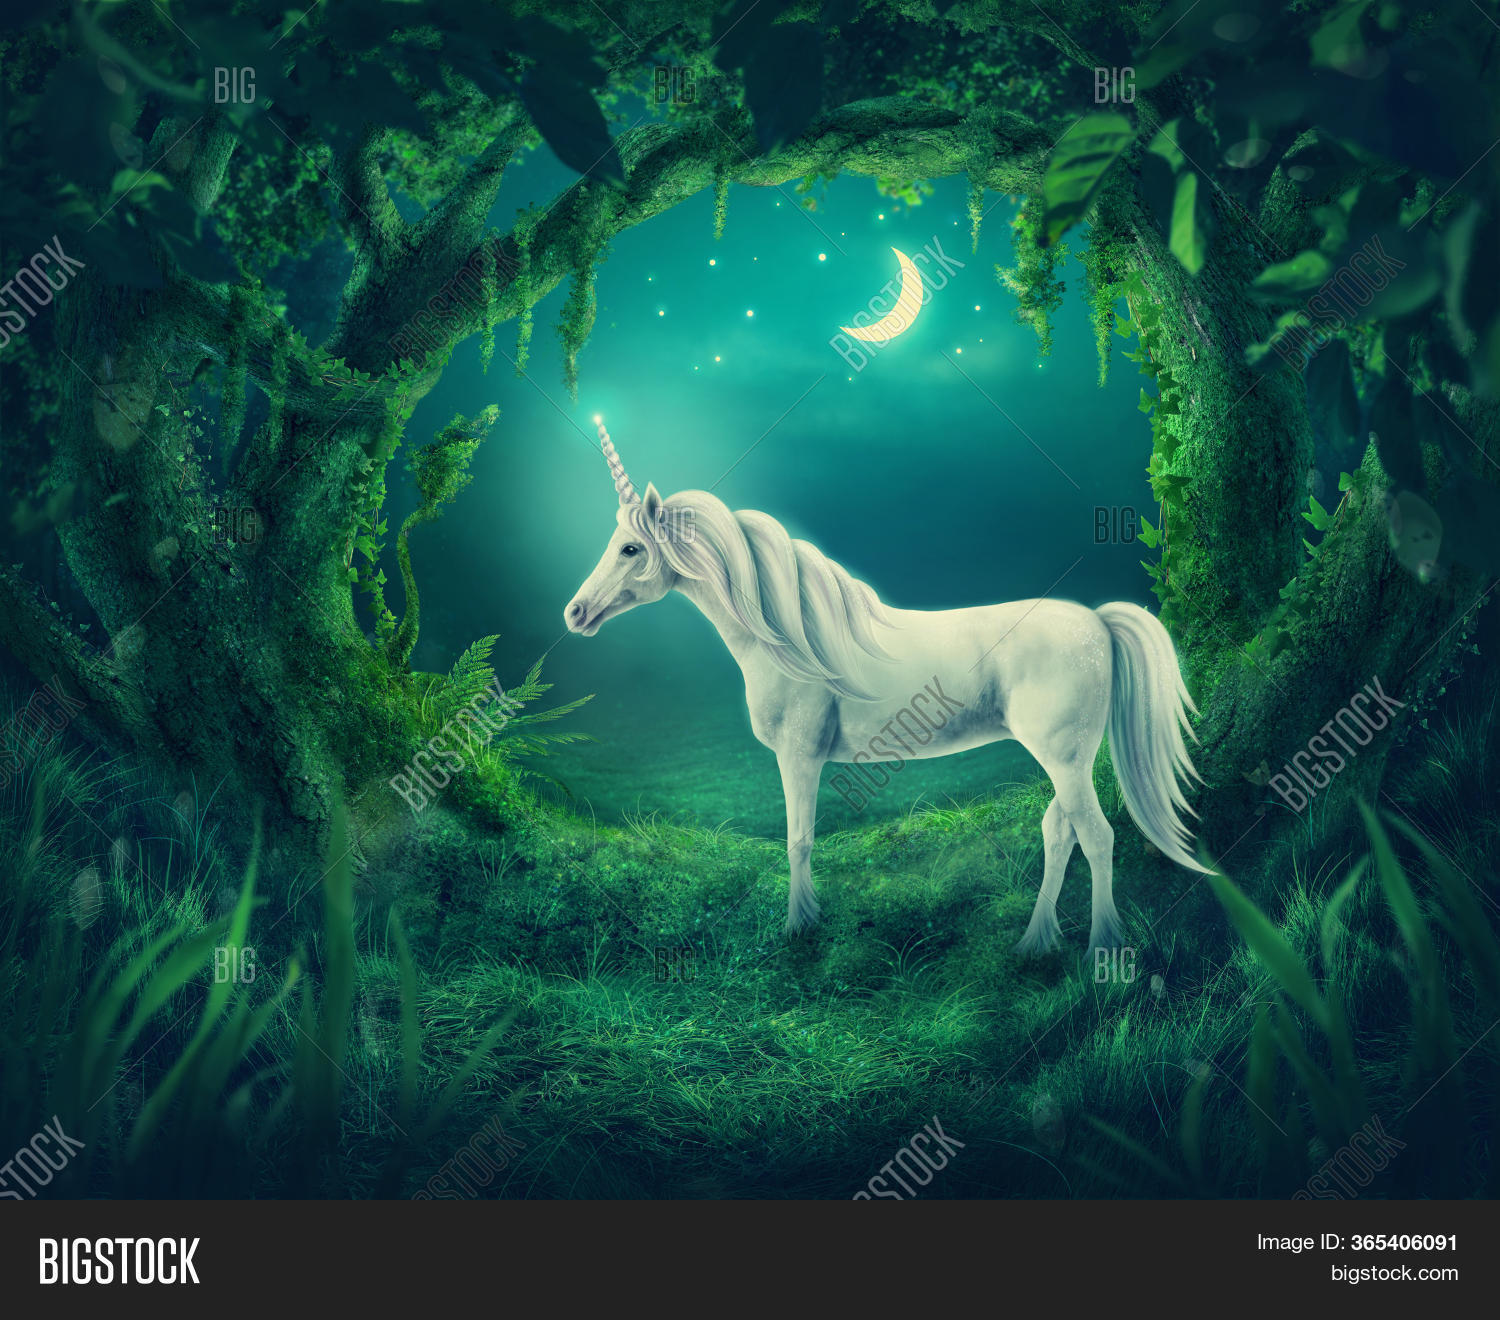 Magic Forest Moonlight Image Photo Free Trial Bigstock